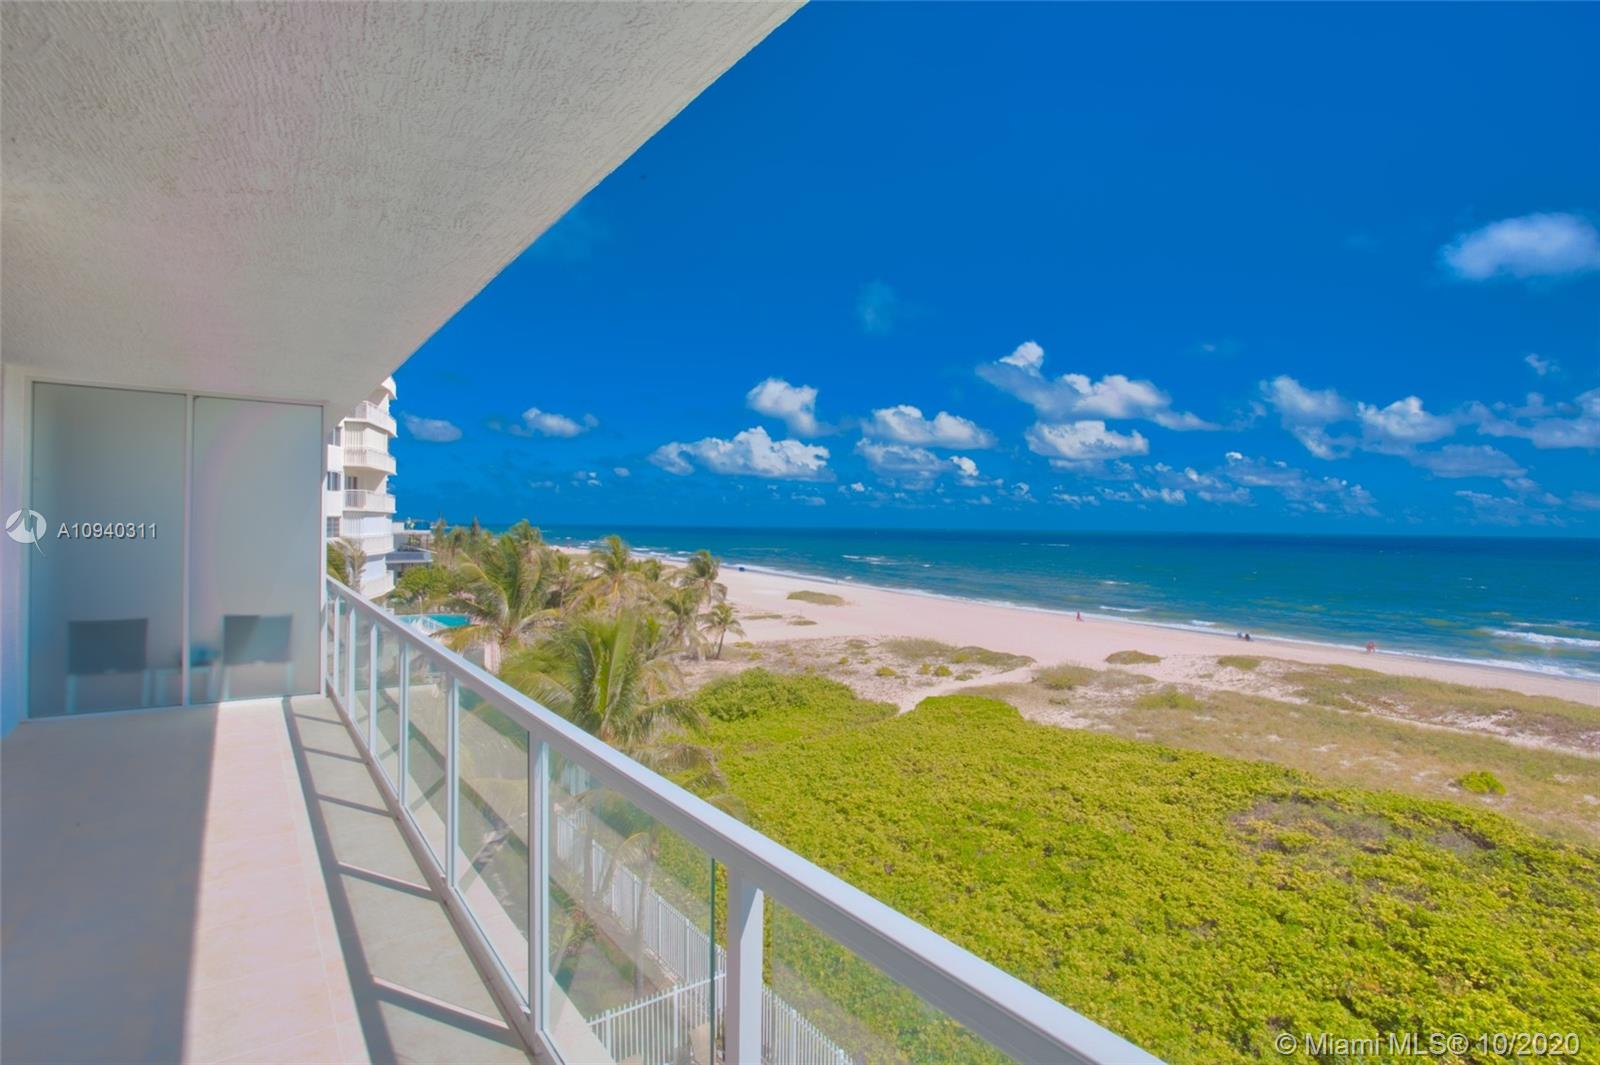 Beautiful 2 bedroom + den / 2.5 bathrooms condo boutique on the Ocean. The unit features floor-to-ceiling windows with direct views of the ocean and intra-coastal. The building offers direct beach access, direct ocean heated infinity pool, fitness center, and club room. Only 32 units.